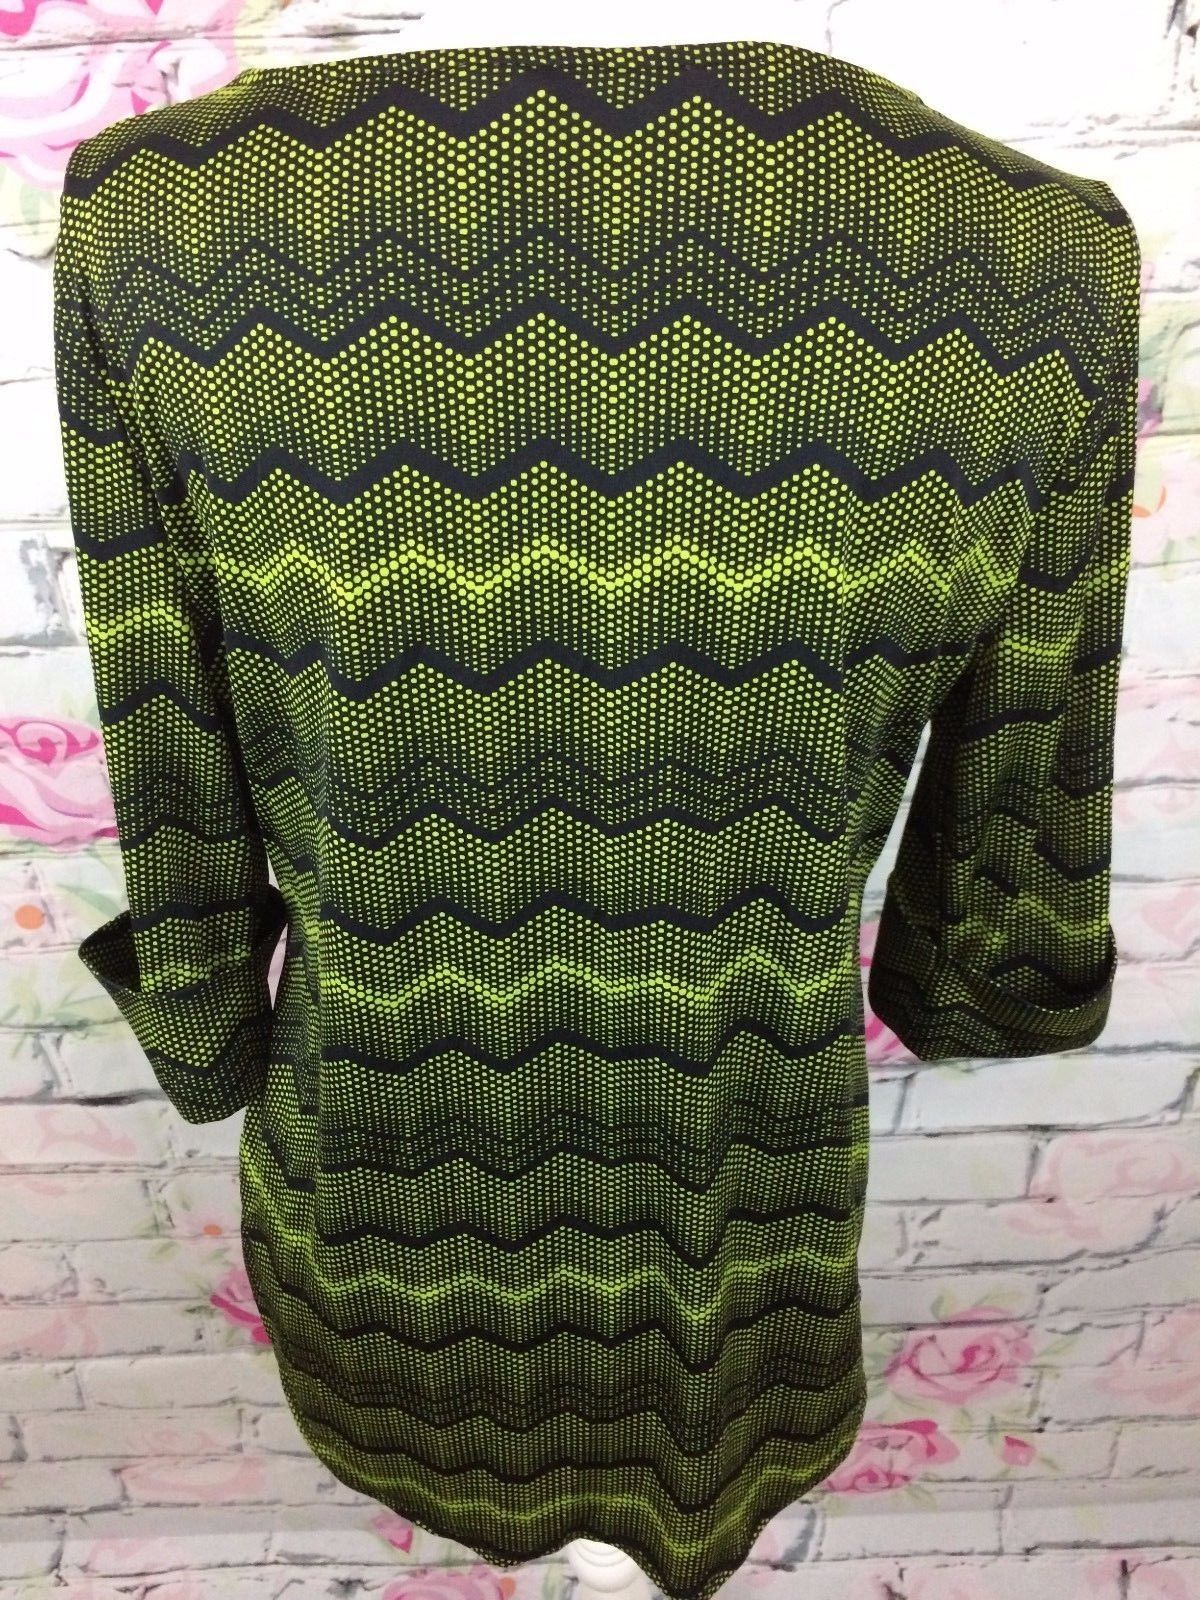 New Directions Womens Stretch 3/4 Sleeve Green Black Chevron Blouse Shirt Size M